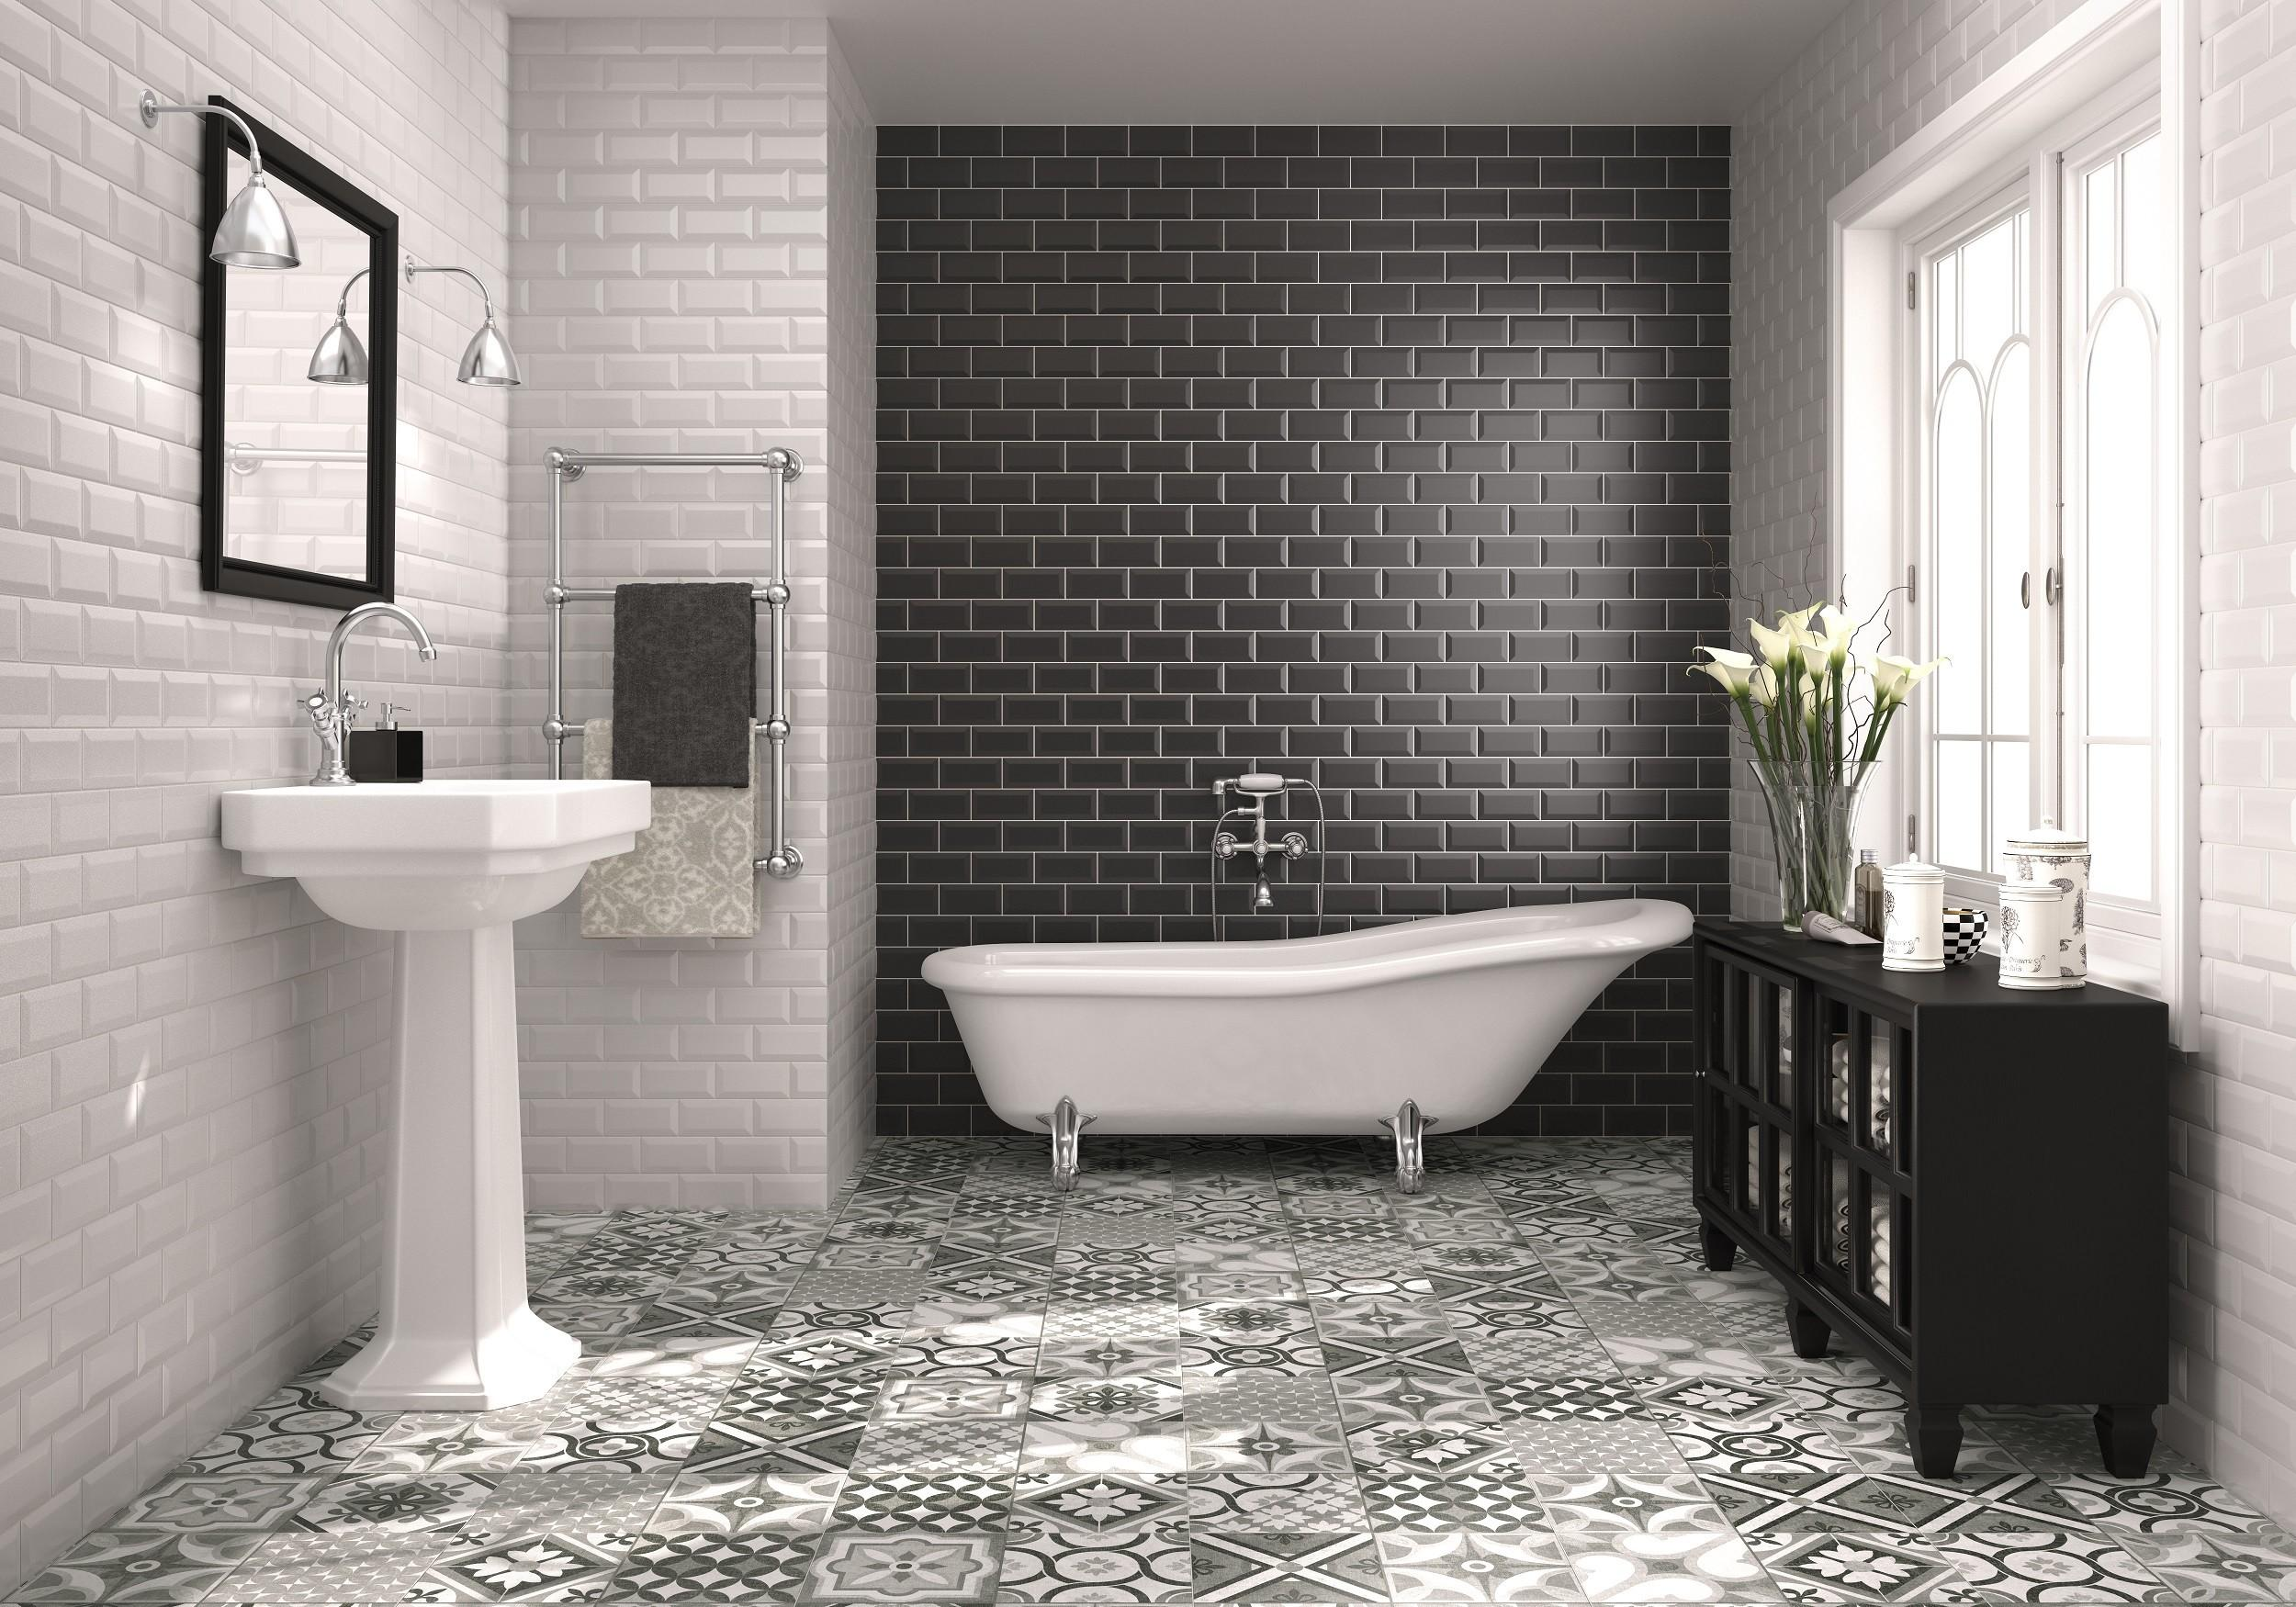 Gorgeous Vintage Bathroom Tile Patterns Your Lovely